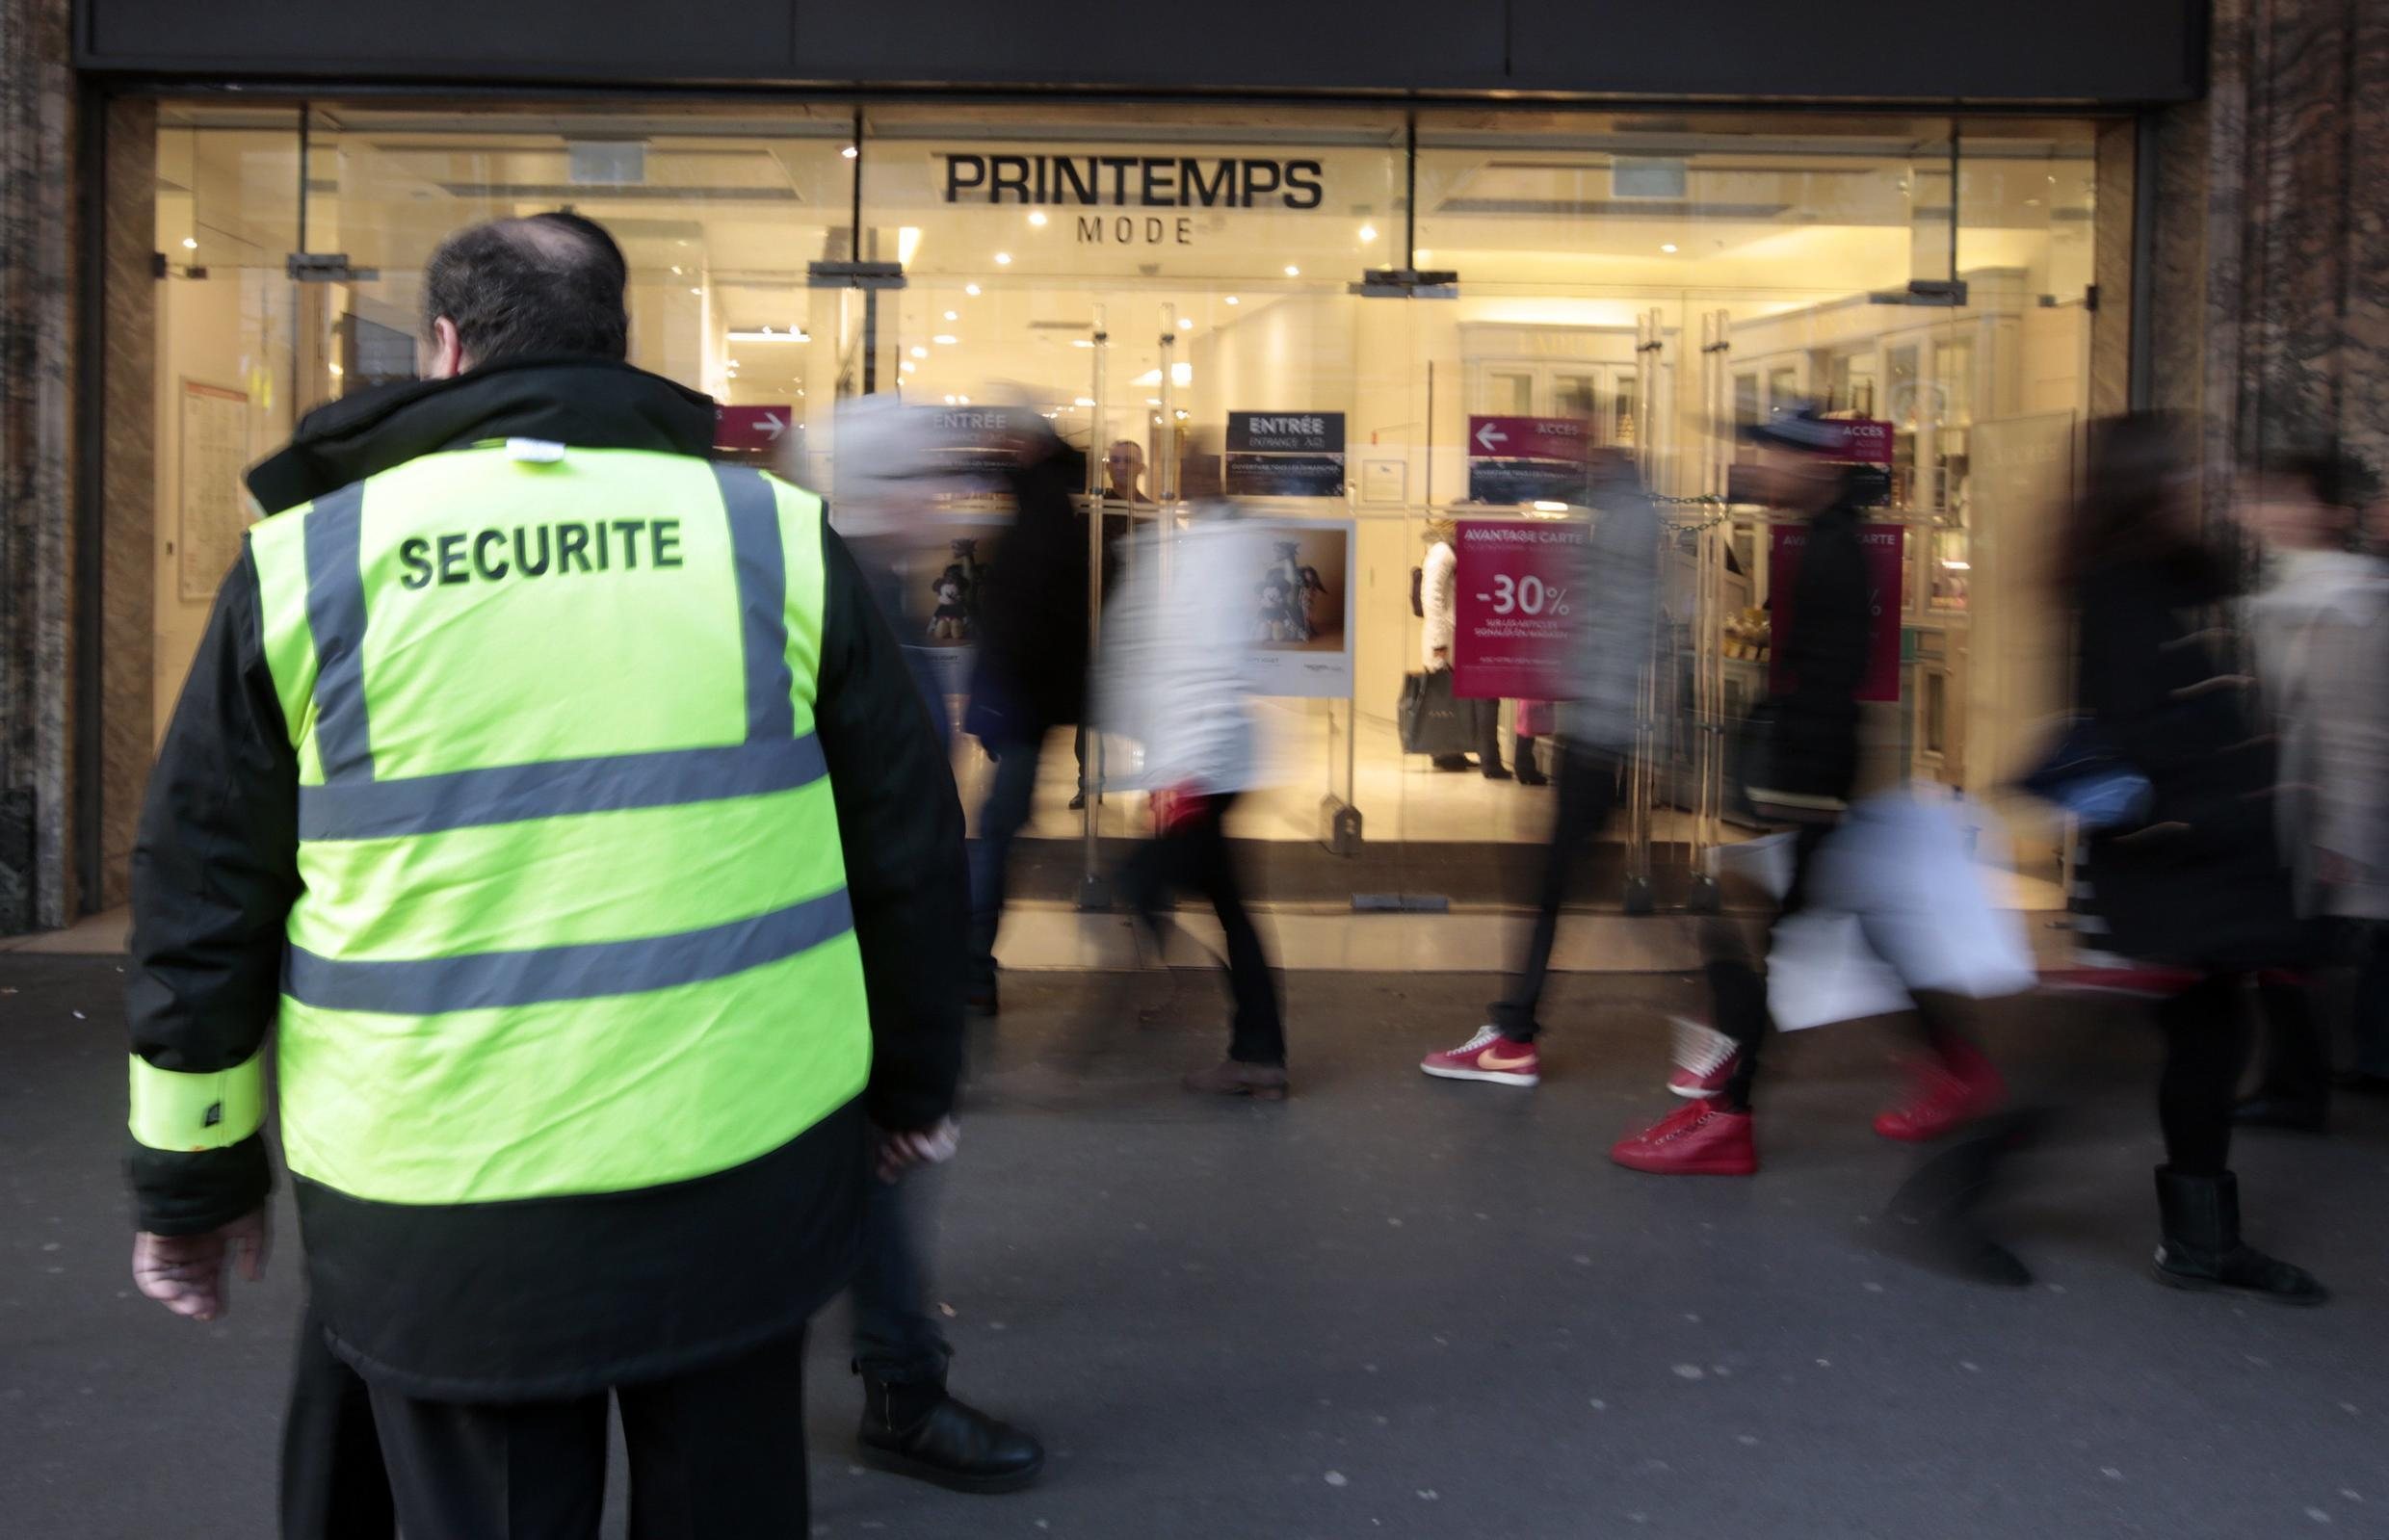 A security guard patrols near the Printemps department store in a shopping district in Paris, France, November 23, 2015 a week after a series of deadly attacks in the French capital